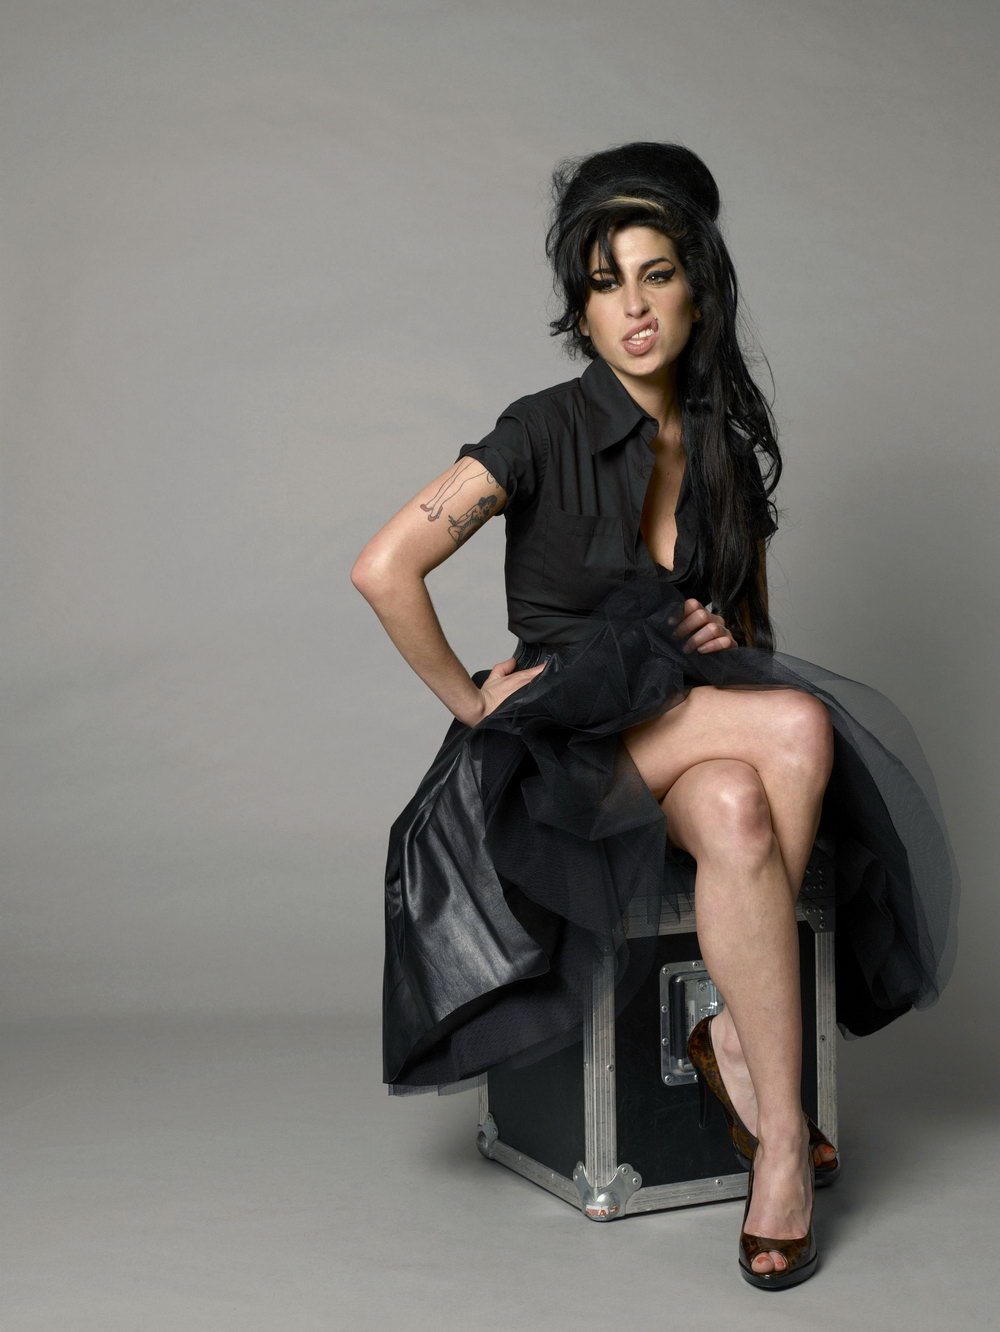 amy winehouse #amys30 posted by amy hq | filed under uncategorized this september, the amy winehouse foundation will be marking amy's 30th birthday #amys30 is a month-long.